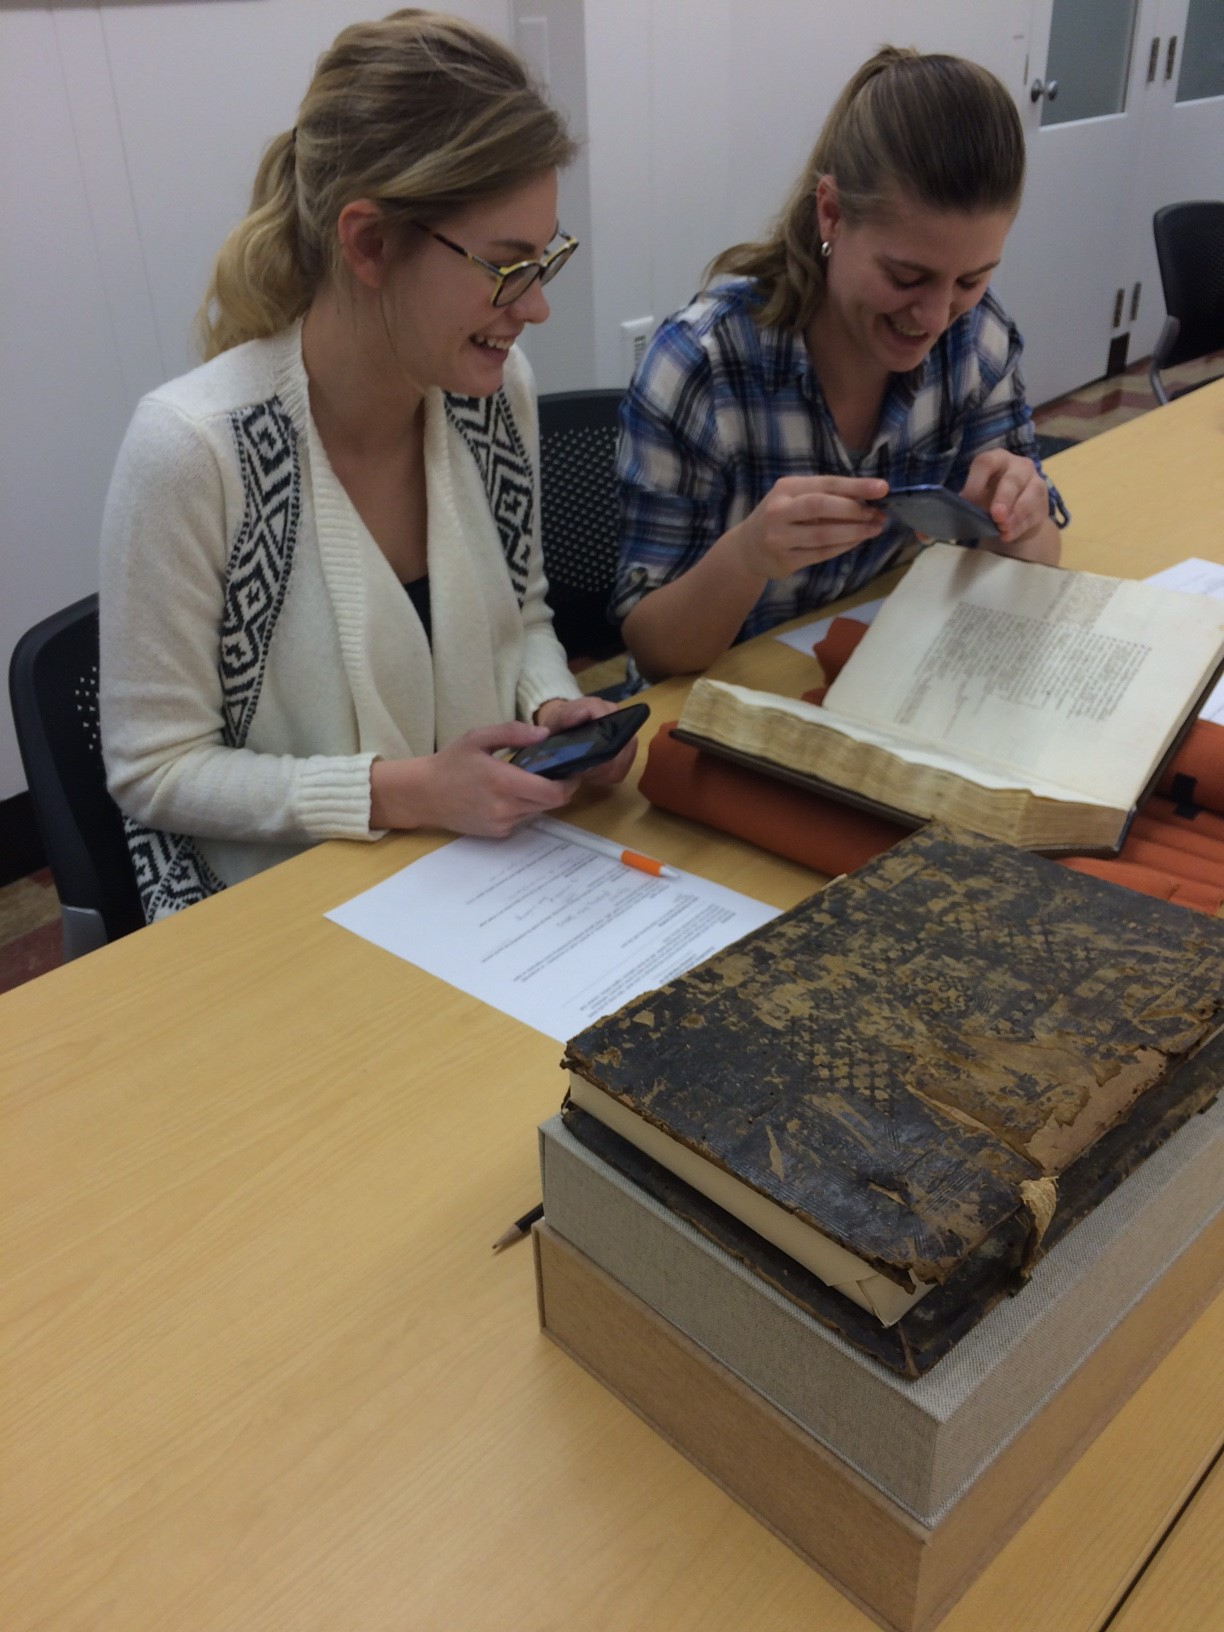 Image of two students examining a book